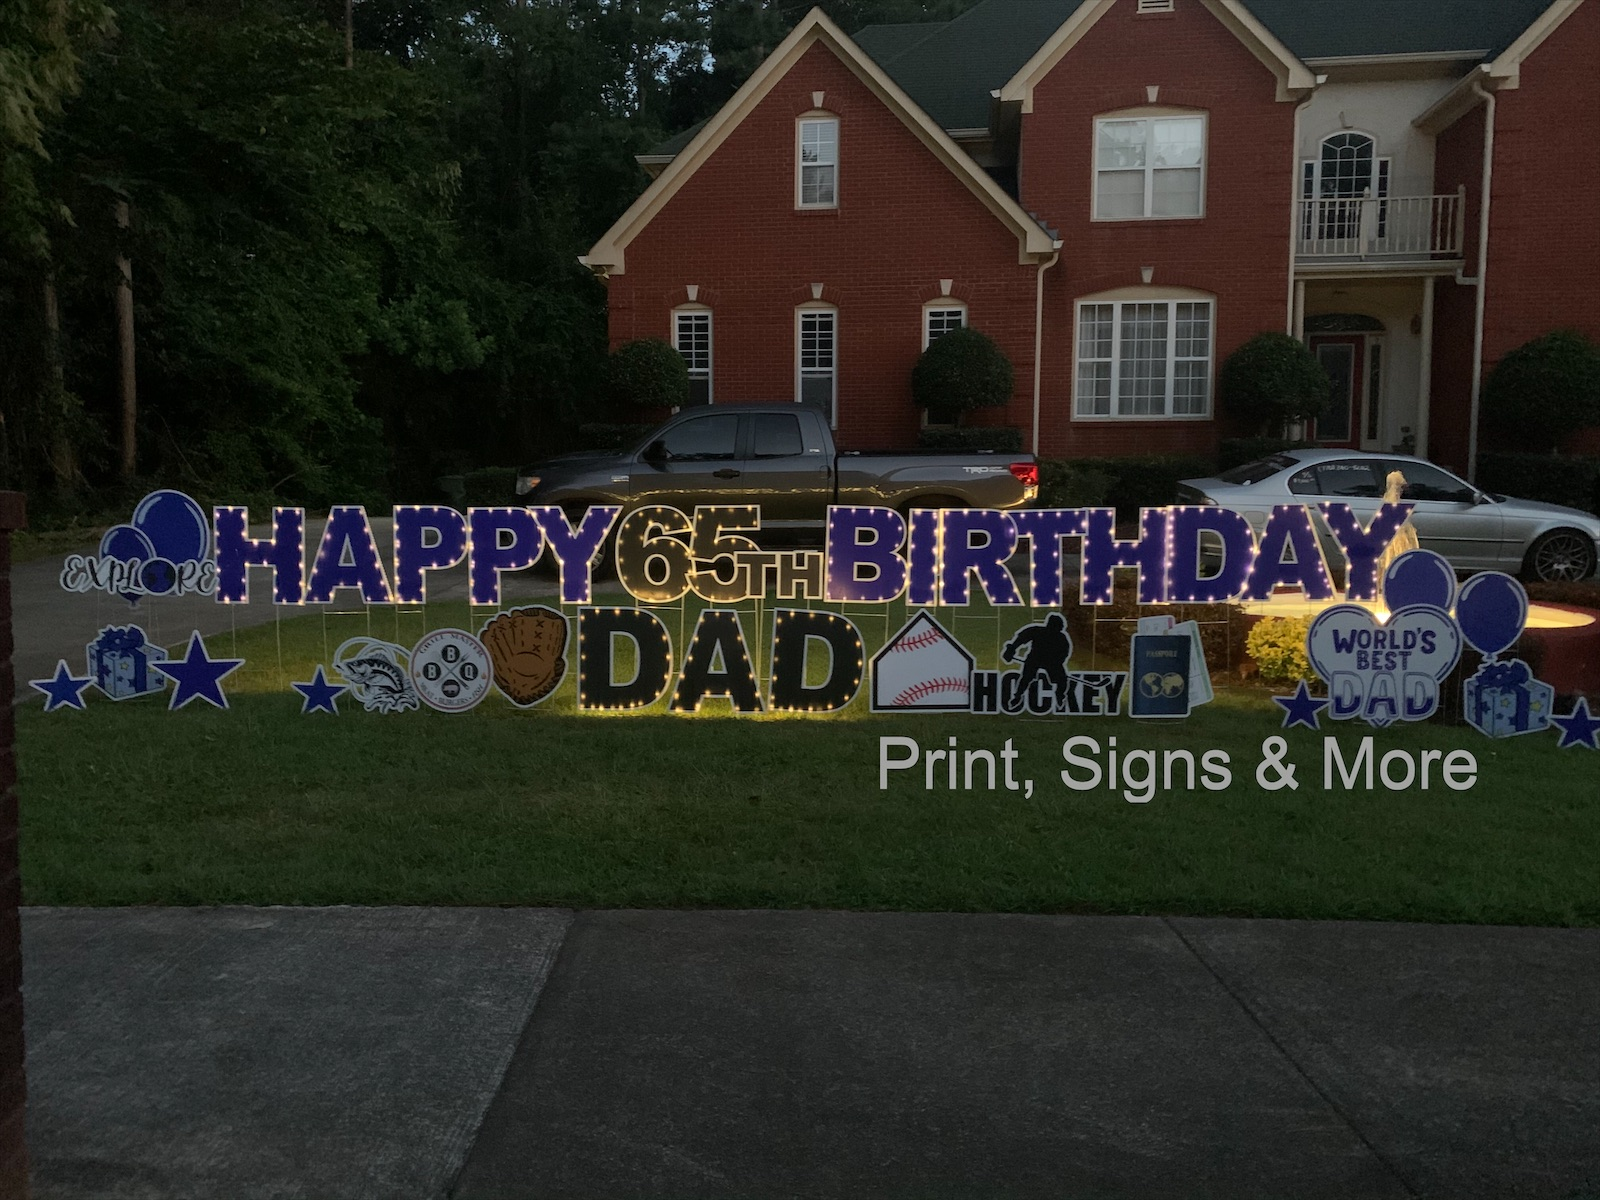 Yard Sign Greetings Party Rentals Supplies Print Signs More